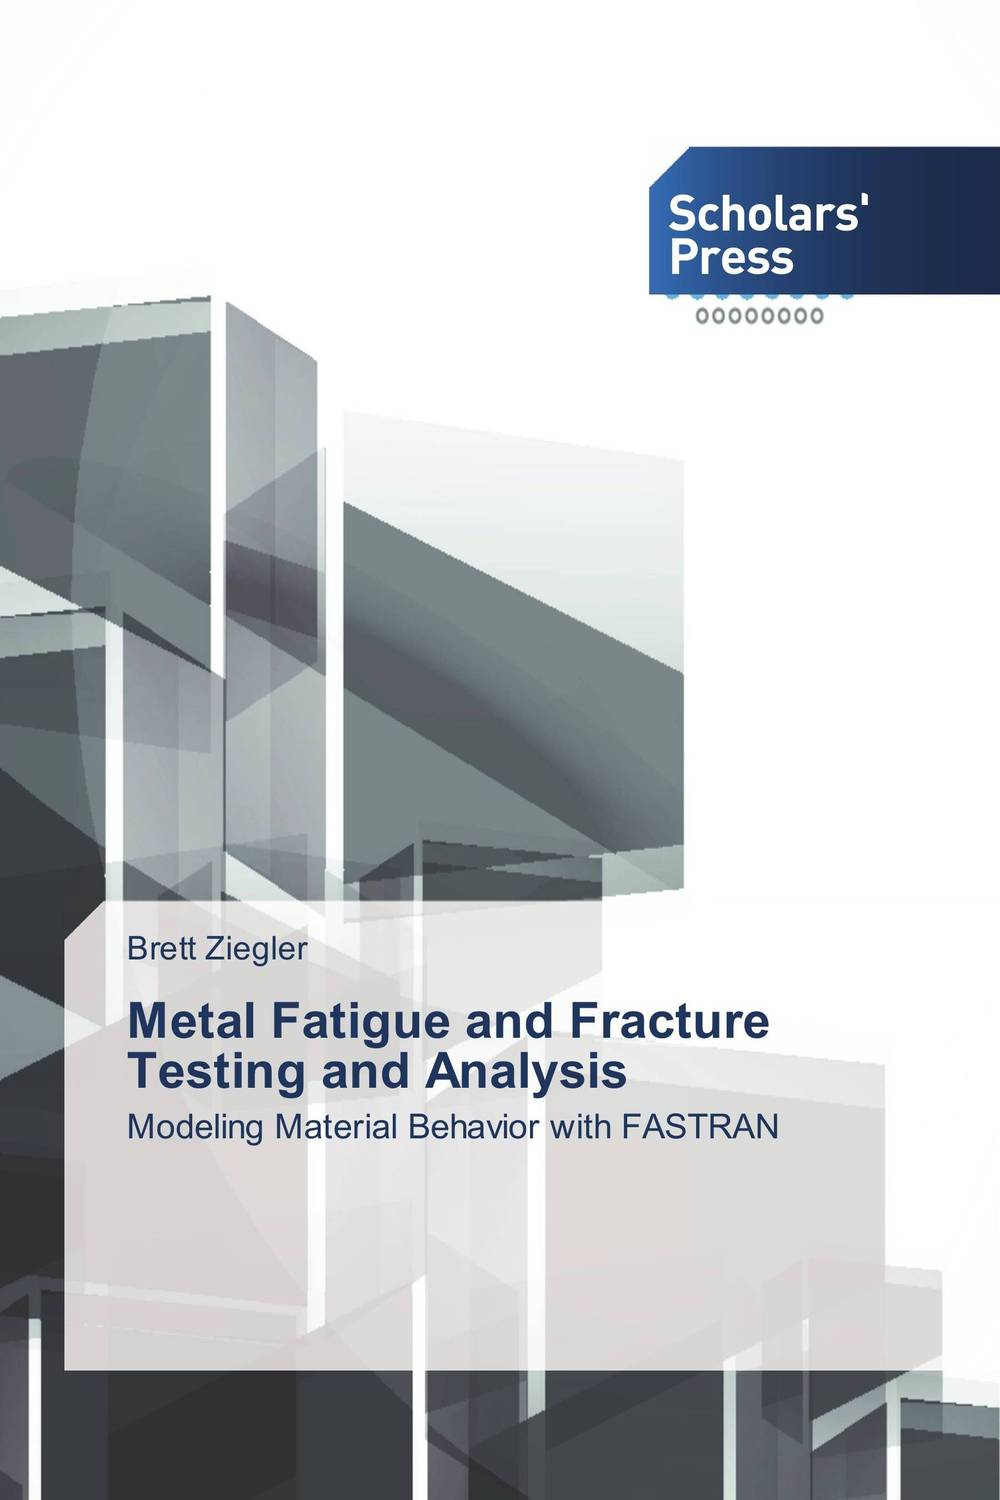 Metal Fatigue and Fracture Testing and Analysis fatigue analysis of asphalt concrete based on crack development